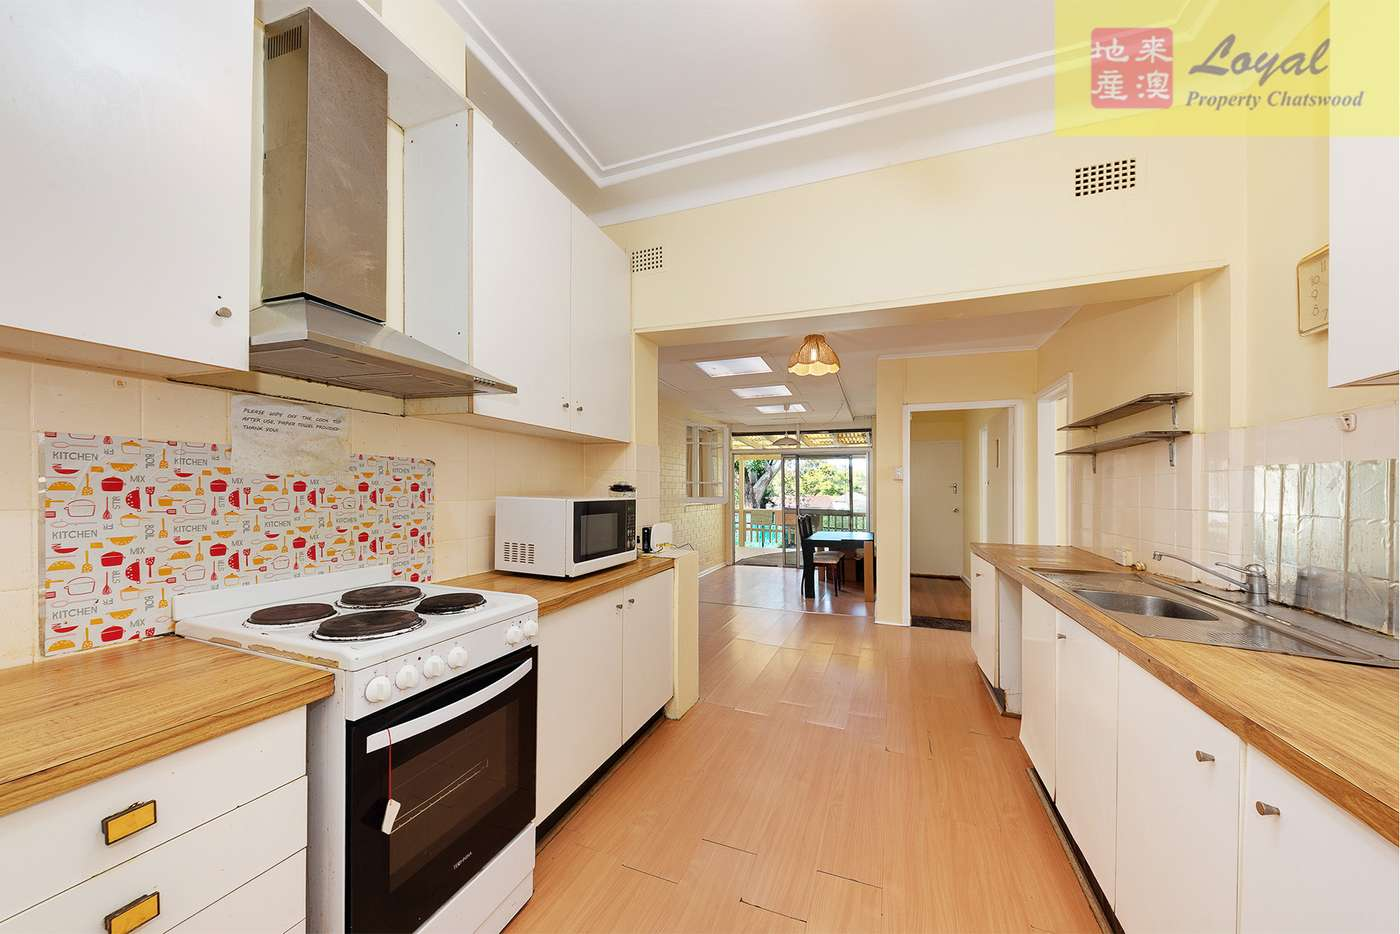 Sixth view of Homely house listing, 8 Cadow Street, Pymble NSW 2073